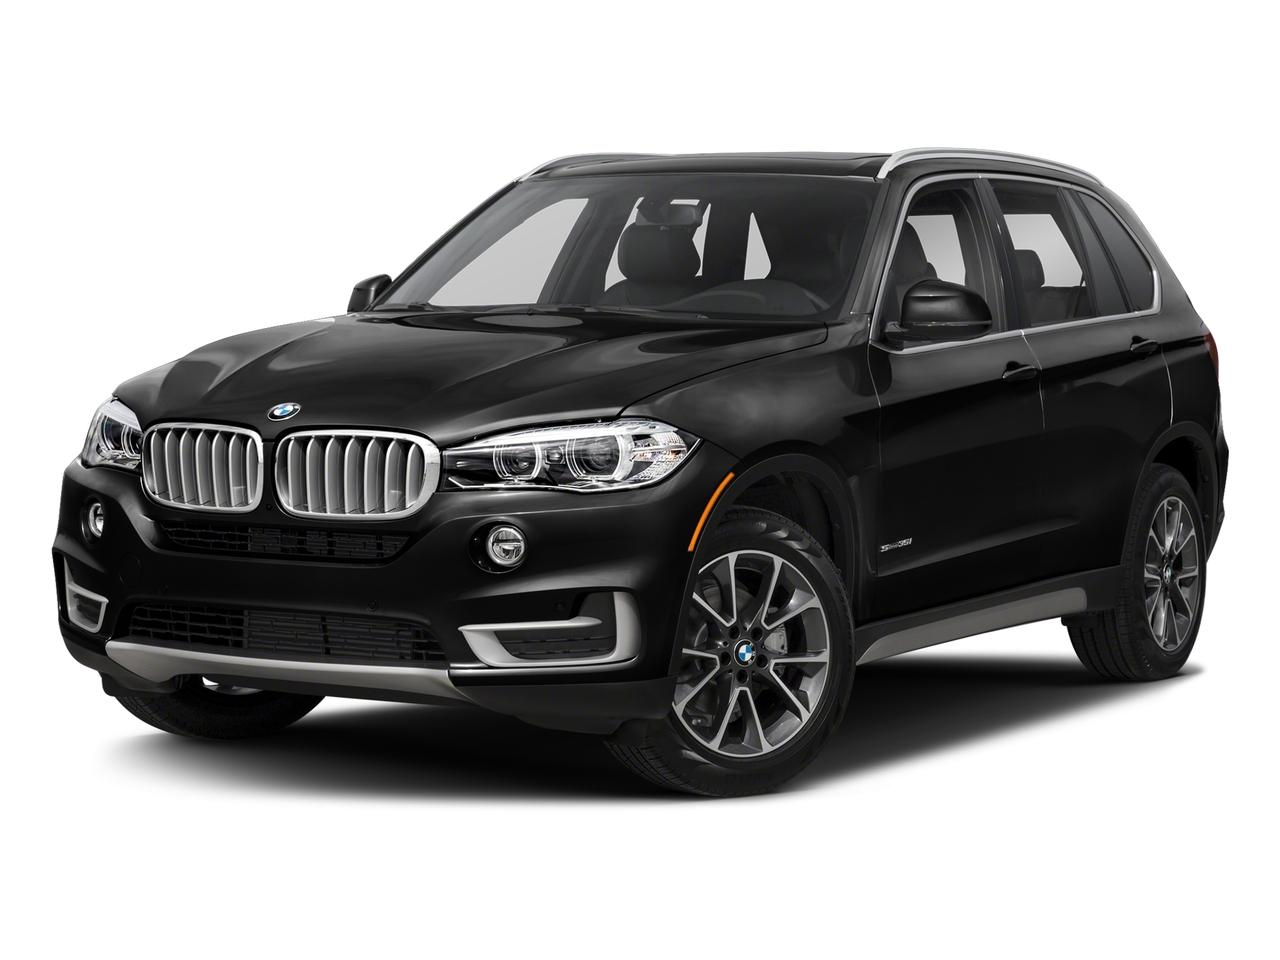 2018 BMW X5 xDrive35i Vehicle Photo in Pleasanton, CA 94588